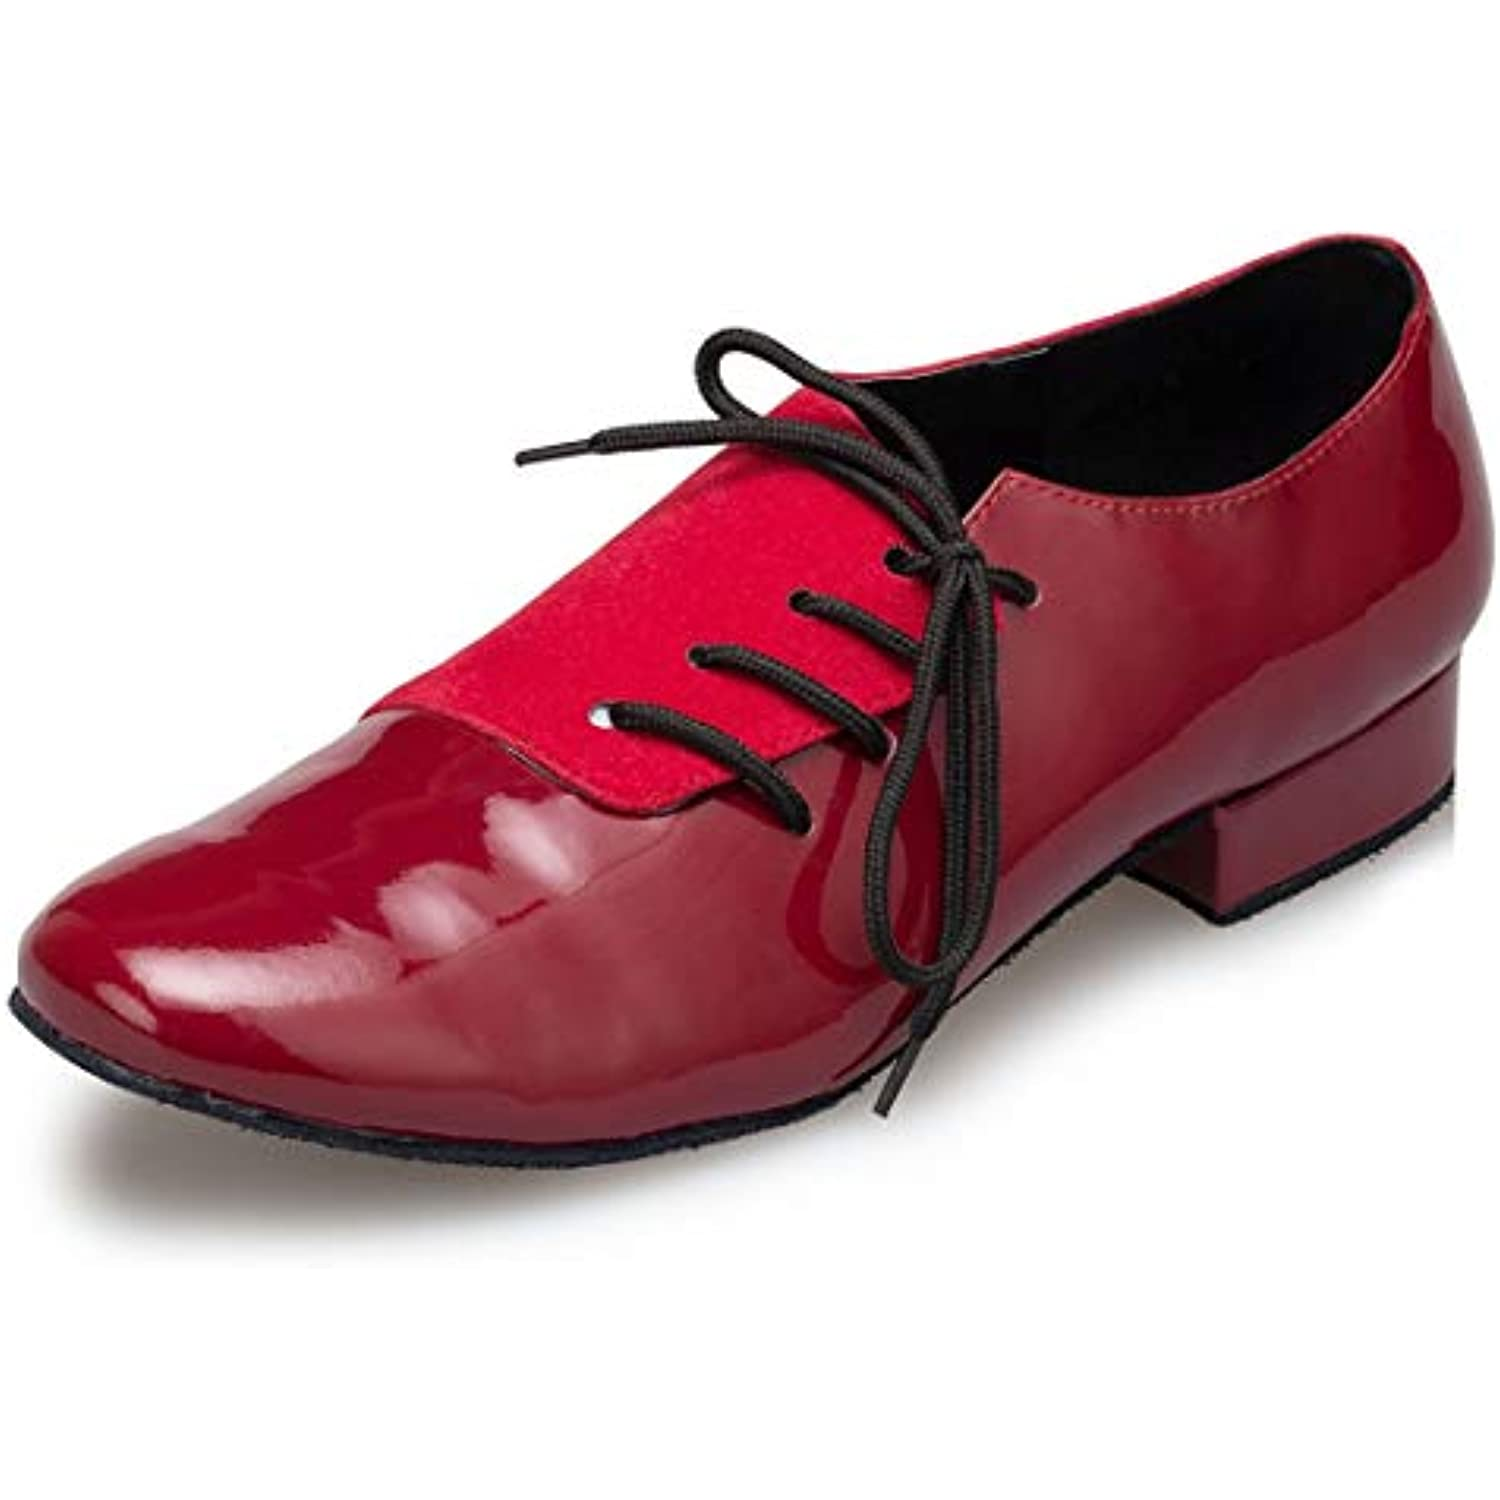 MGM-Joymod MGM-Joymod MGM-Joymod , Modern Jazz Homme - Rouge - Red, 39 - B07JMXRQSW - 22a3a2